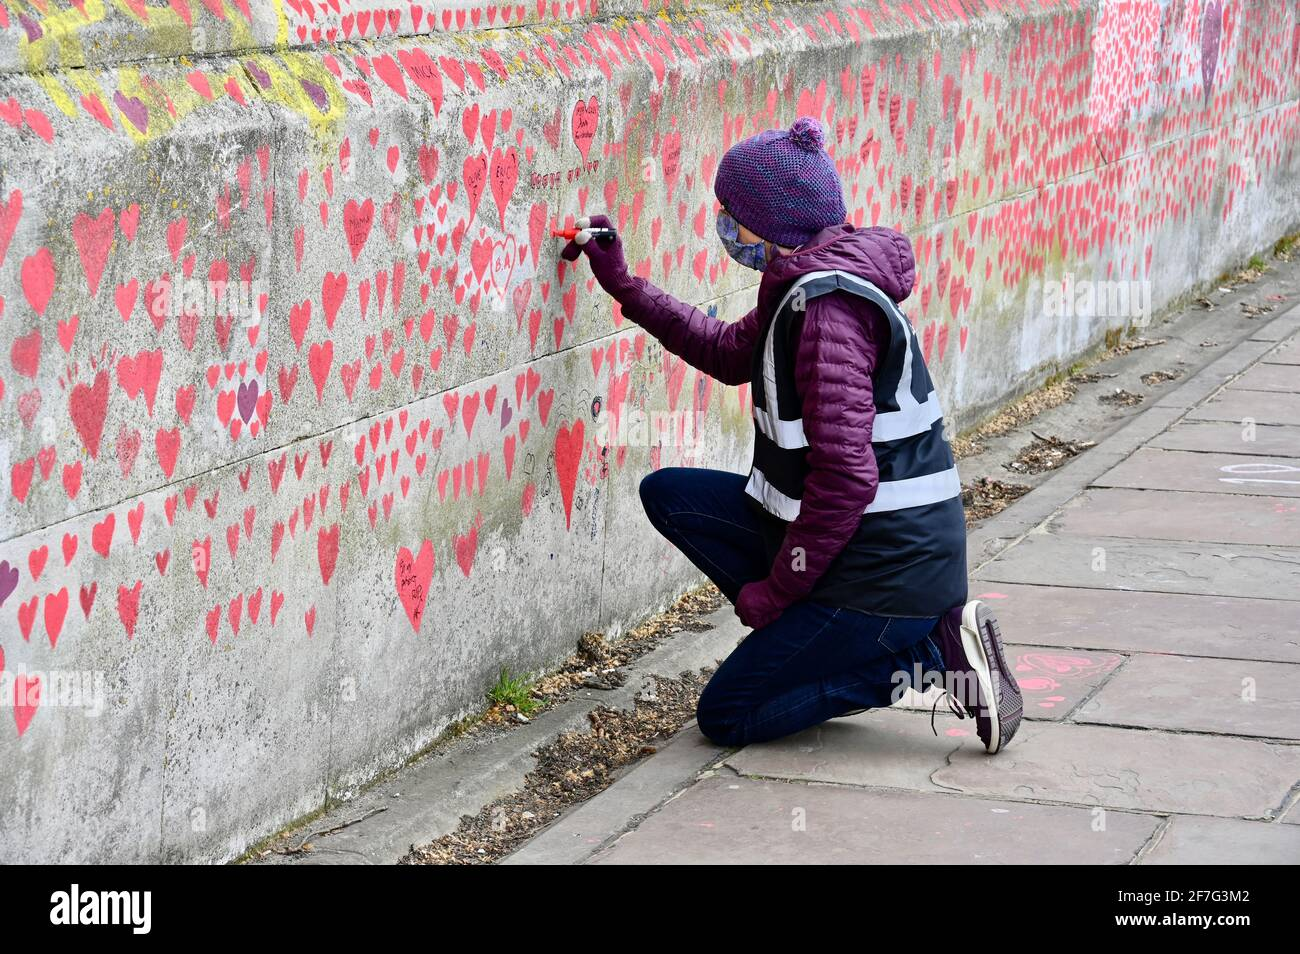 London. UK. Hearts continue to be added to the National Covid Memorial Wall at St. Thomas' Hospital Westminster, in memory of those who have died from coronavirus during the pandemic. Stock Photo